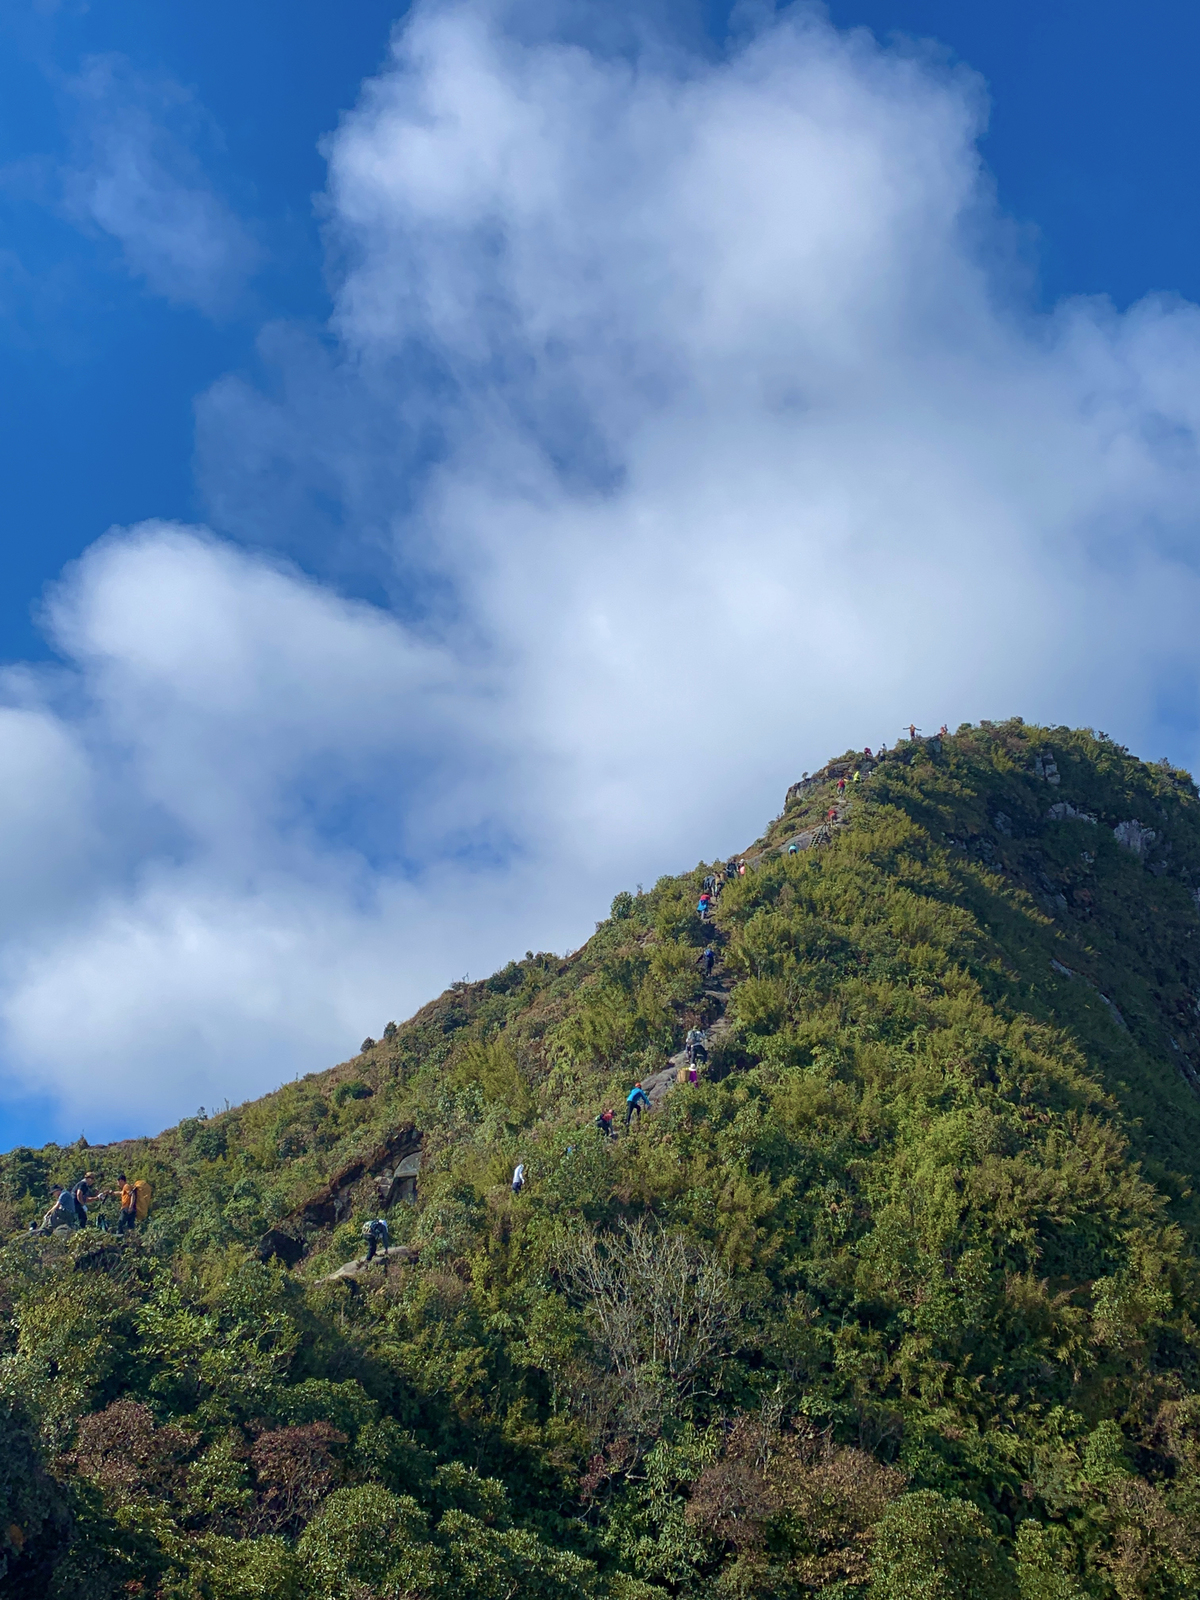 Ky Quan San: A challenging but imposing peak for adventure lovers